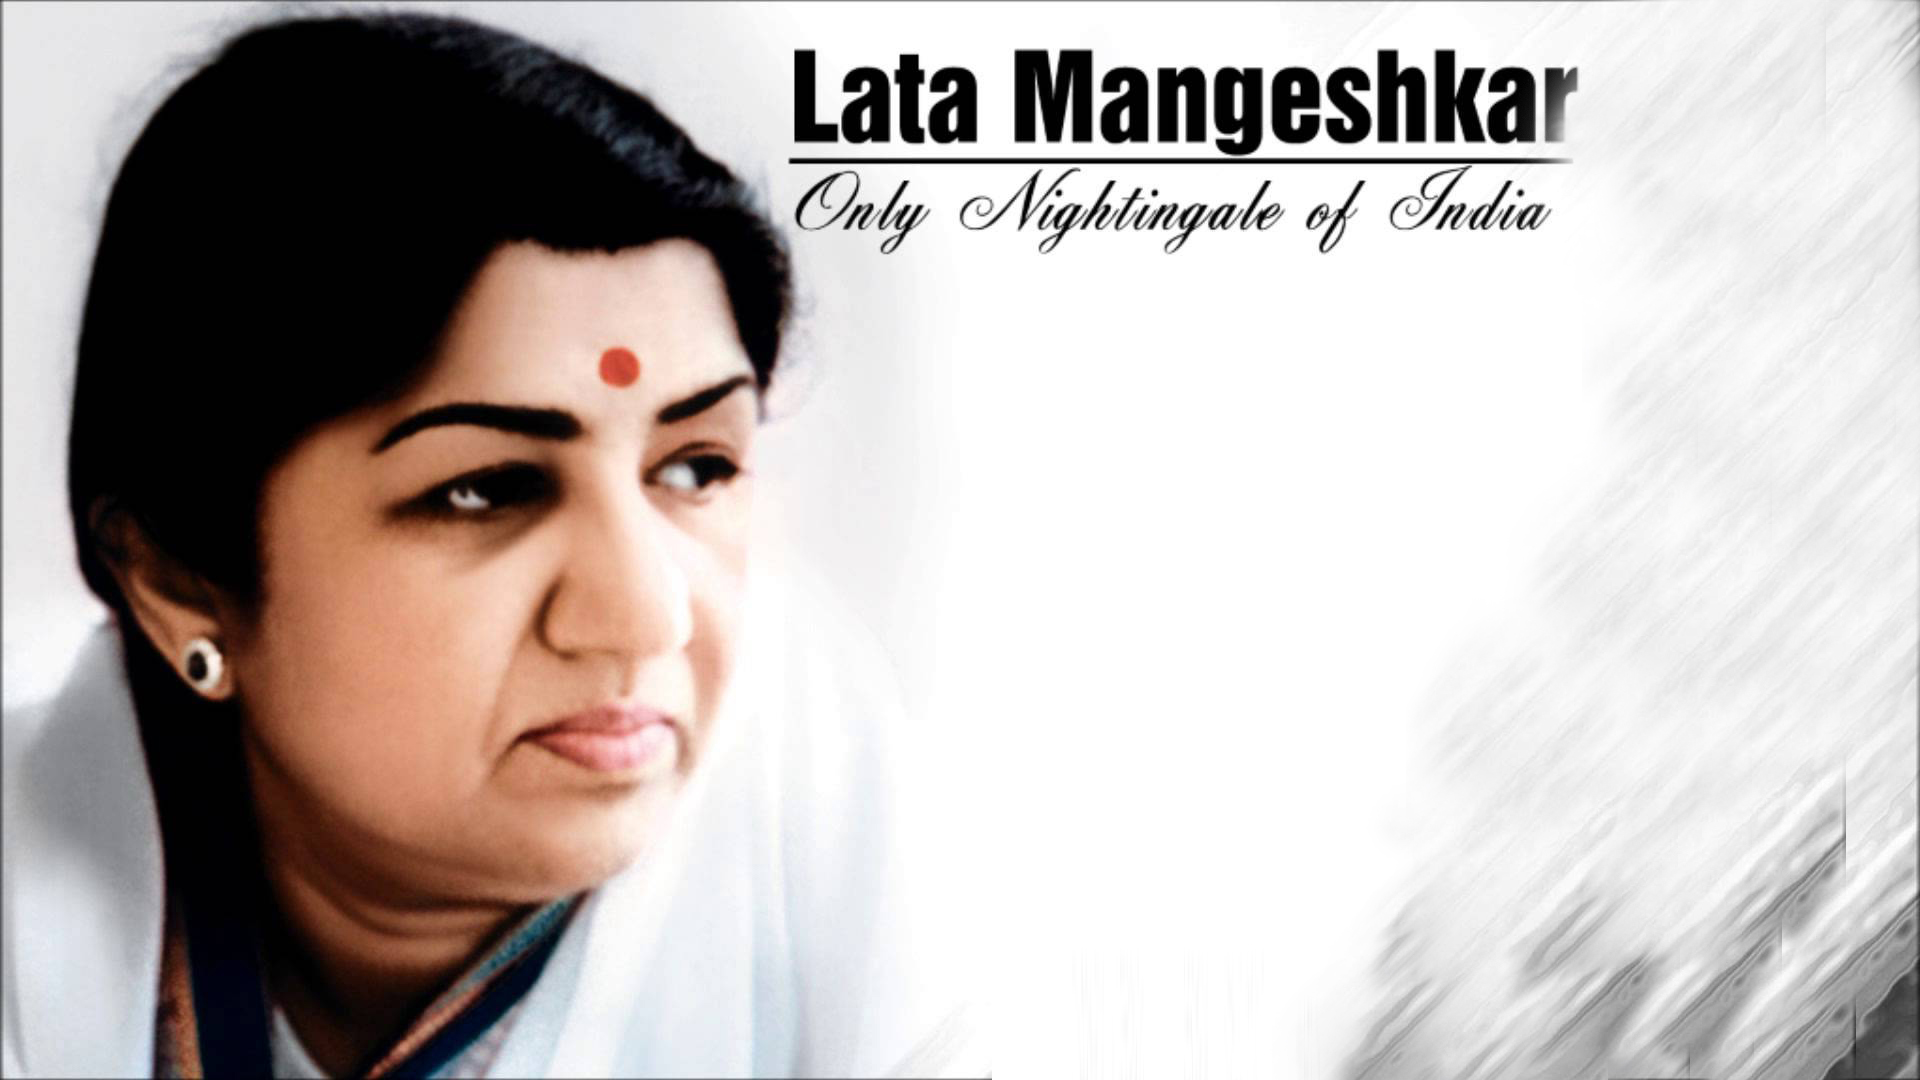 The best of Lata Mangeshkar